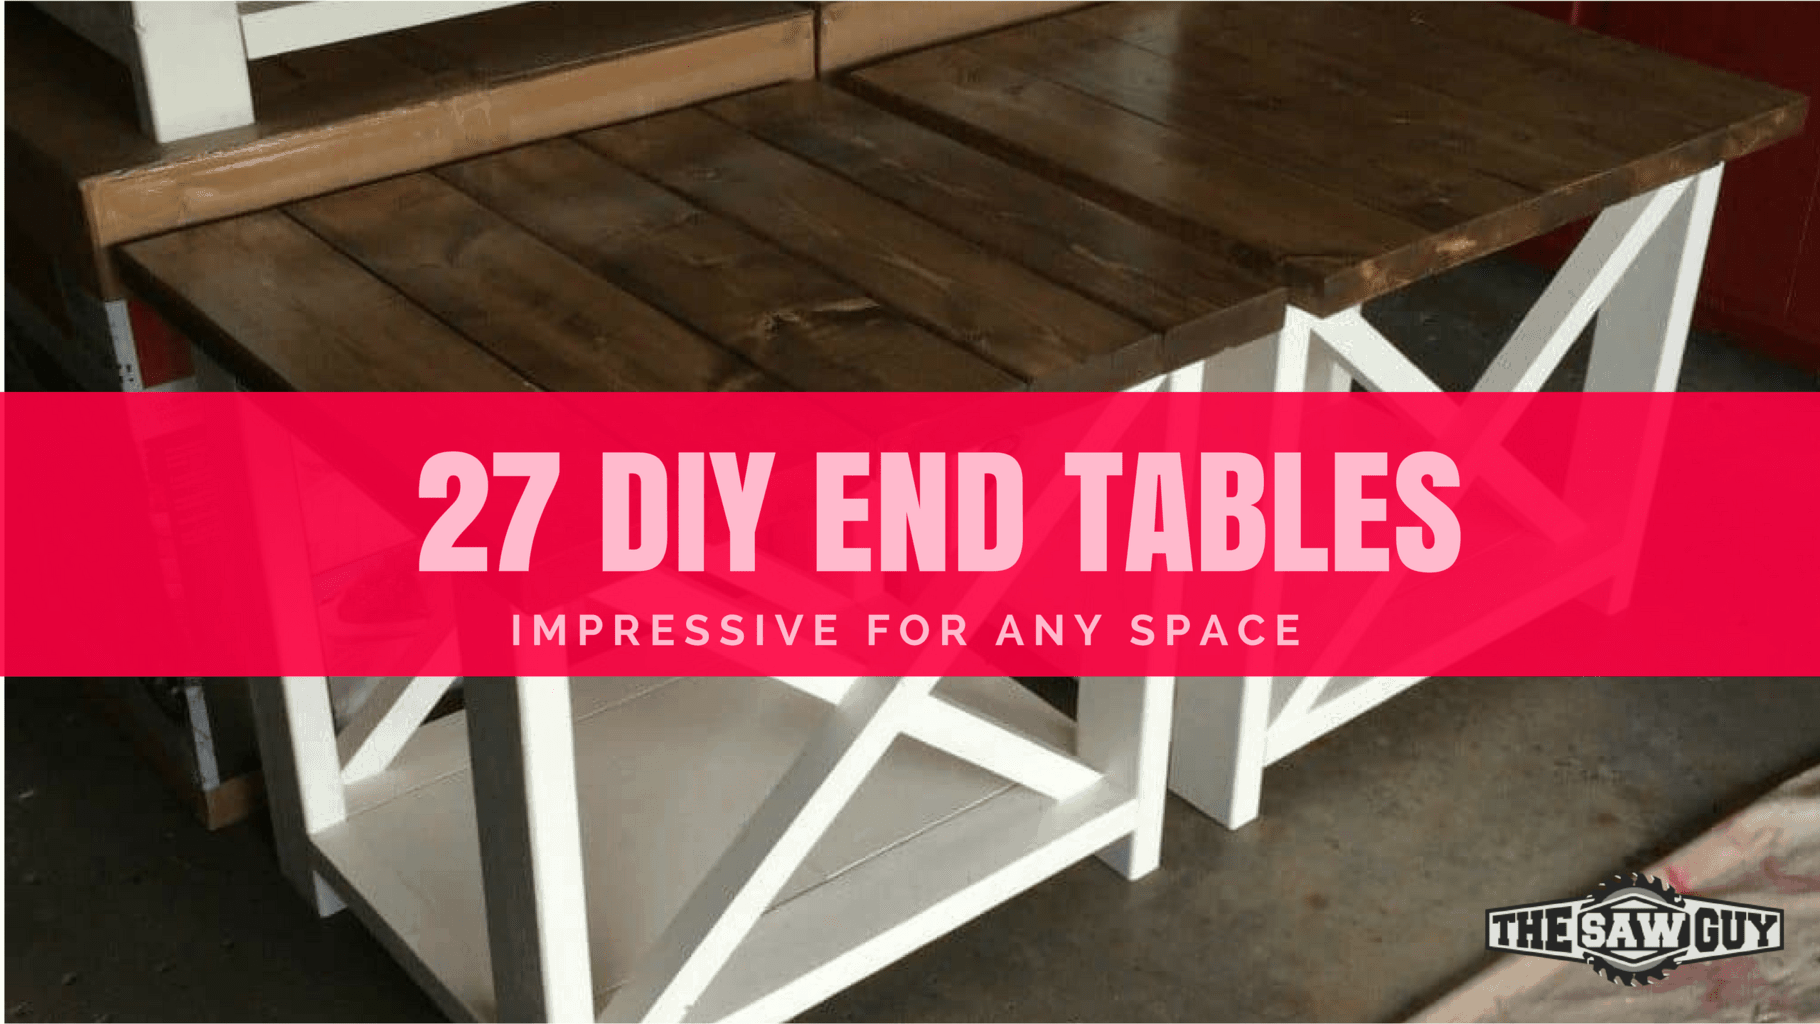 Incredible 27 Impressive Diy End Tables For Any Space The Saw Guy Inzonedesignstudio Interior Chair Design Inzonedesignstudiocom